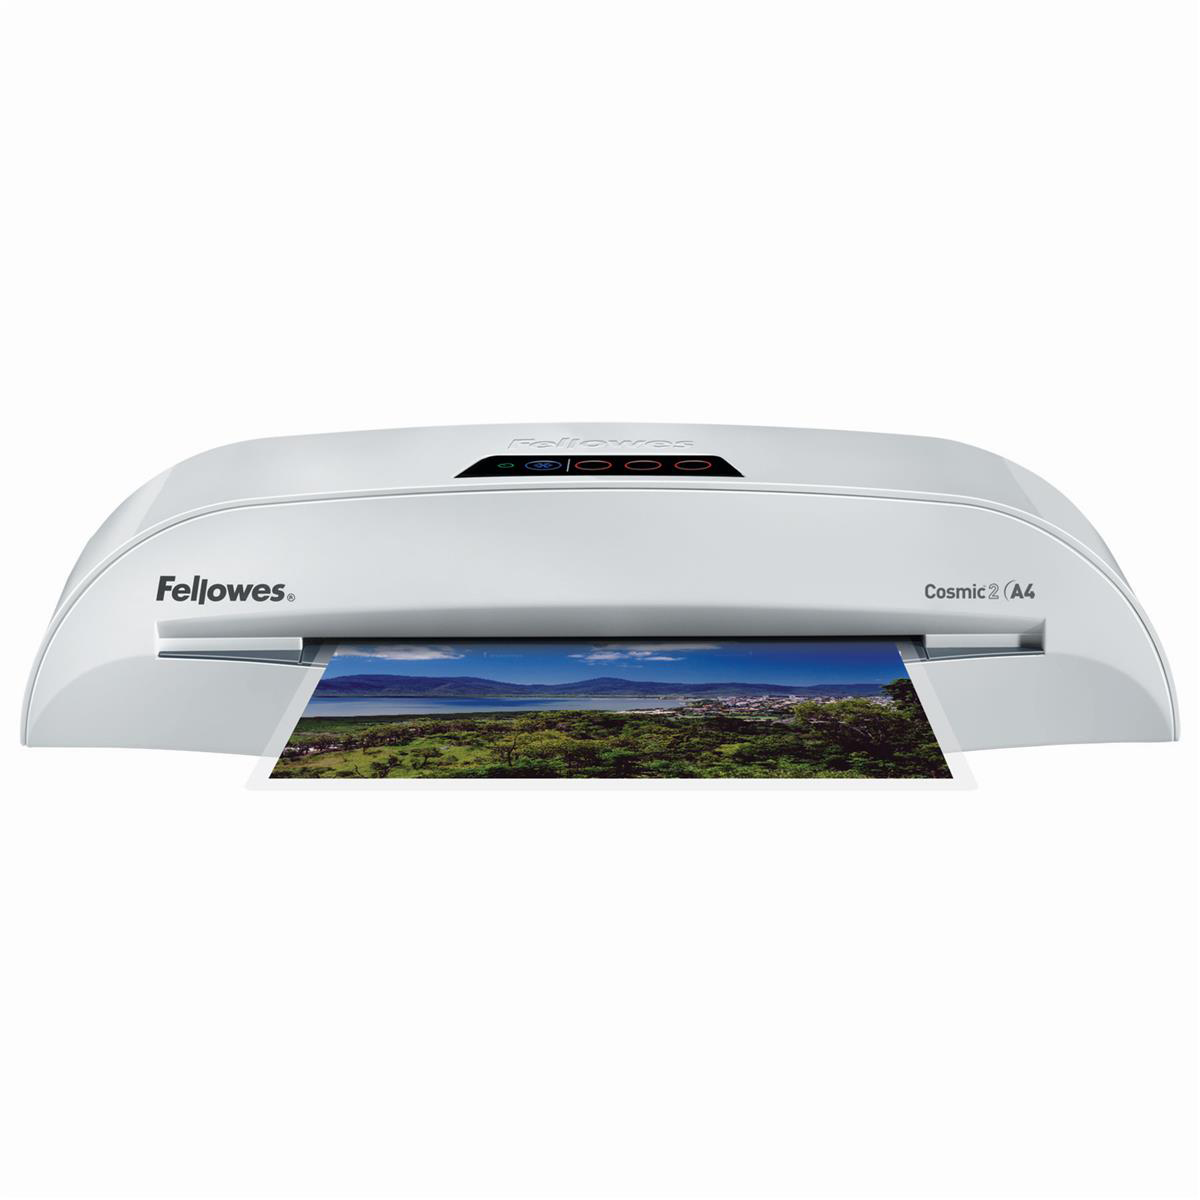 Laminators Fellowes Cosmic 2 Laminator A4 Ref 5725101